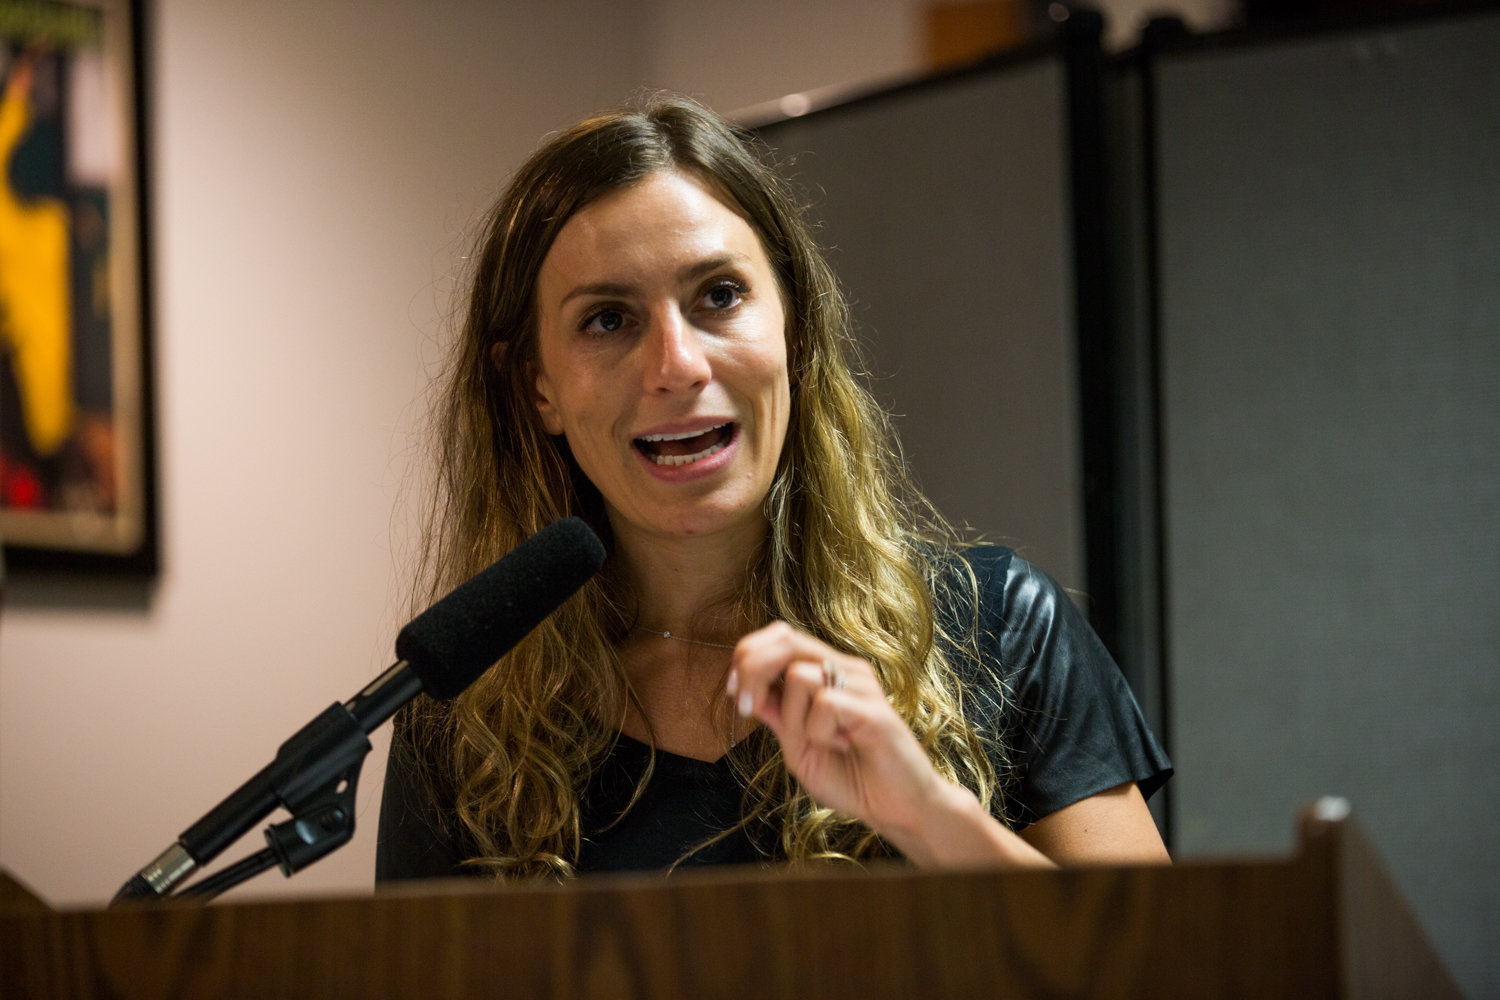 State Sen. Alessandra Biaggi heralded the elimination of cash bail for low-level crimes, misdemeanors and non-violent felonies because she believes it will make the criminal justice system fairer.